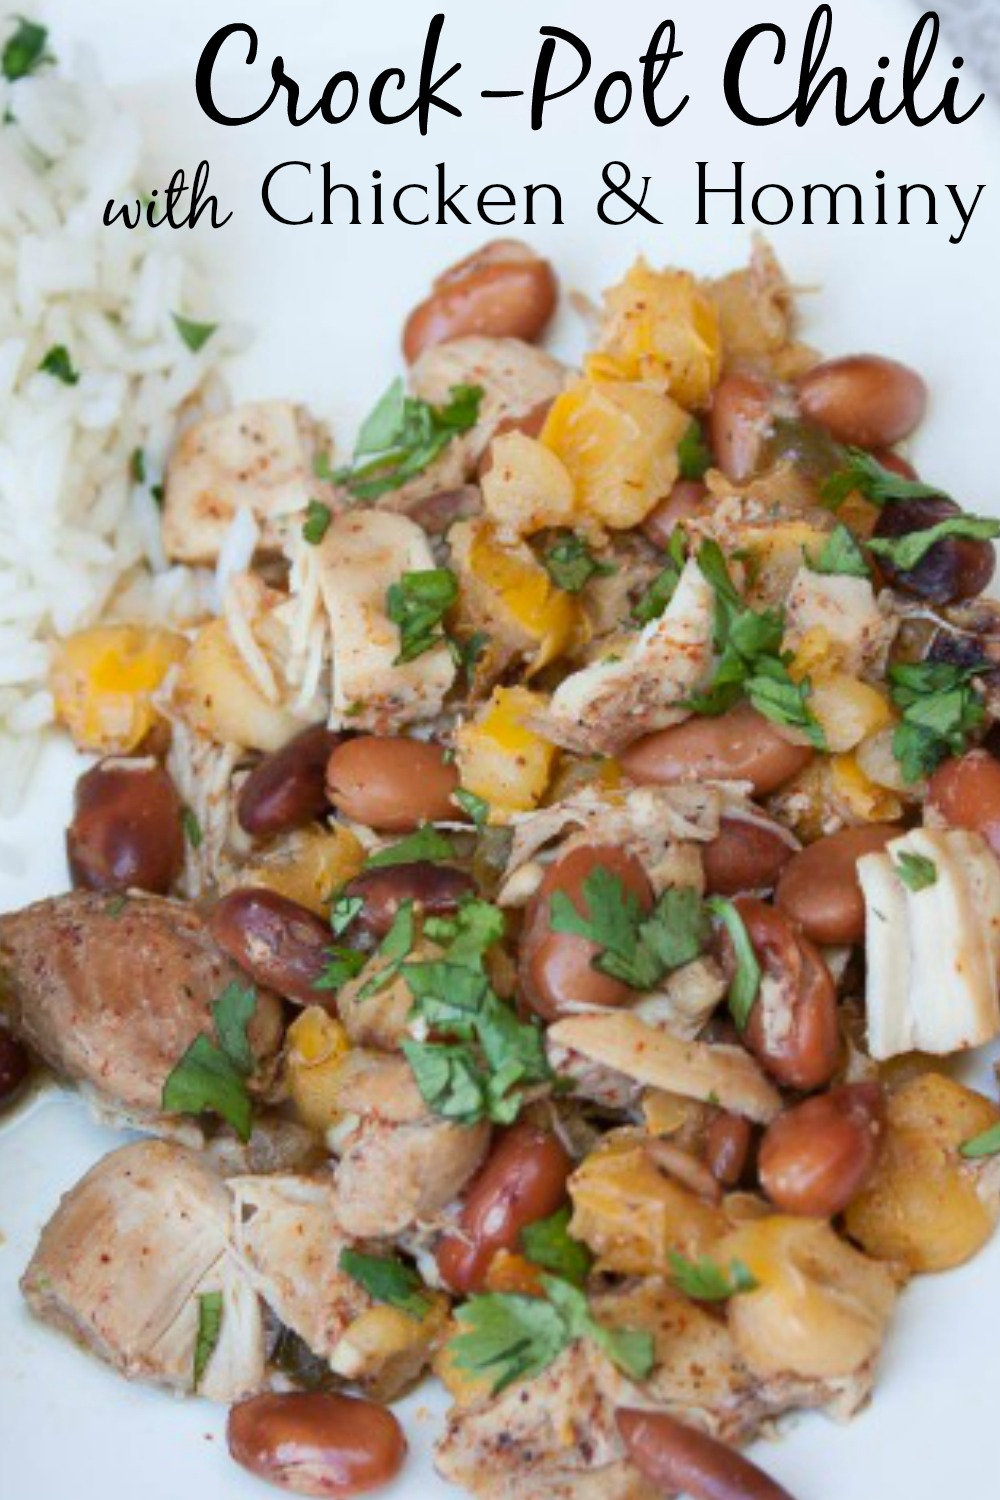 Crock-Pot Chili with Chicken & Hominy - This healthy and delicious dish is easy to make using a slow cooker or crock-pot. via @spaula